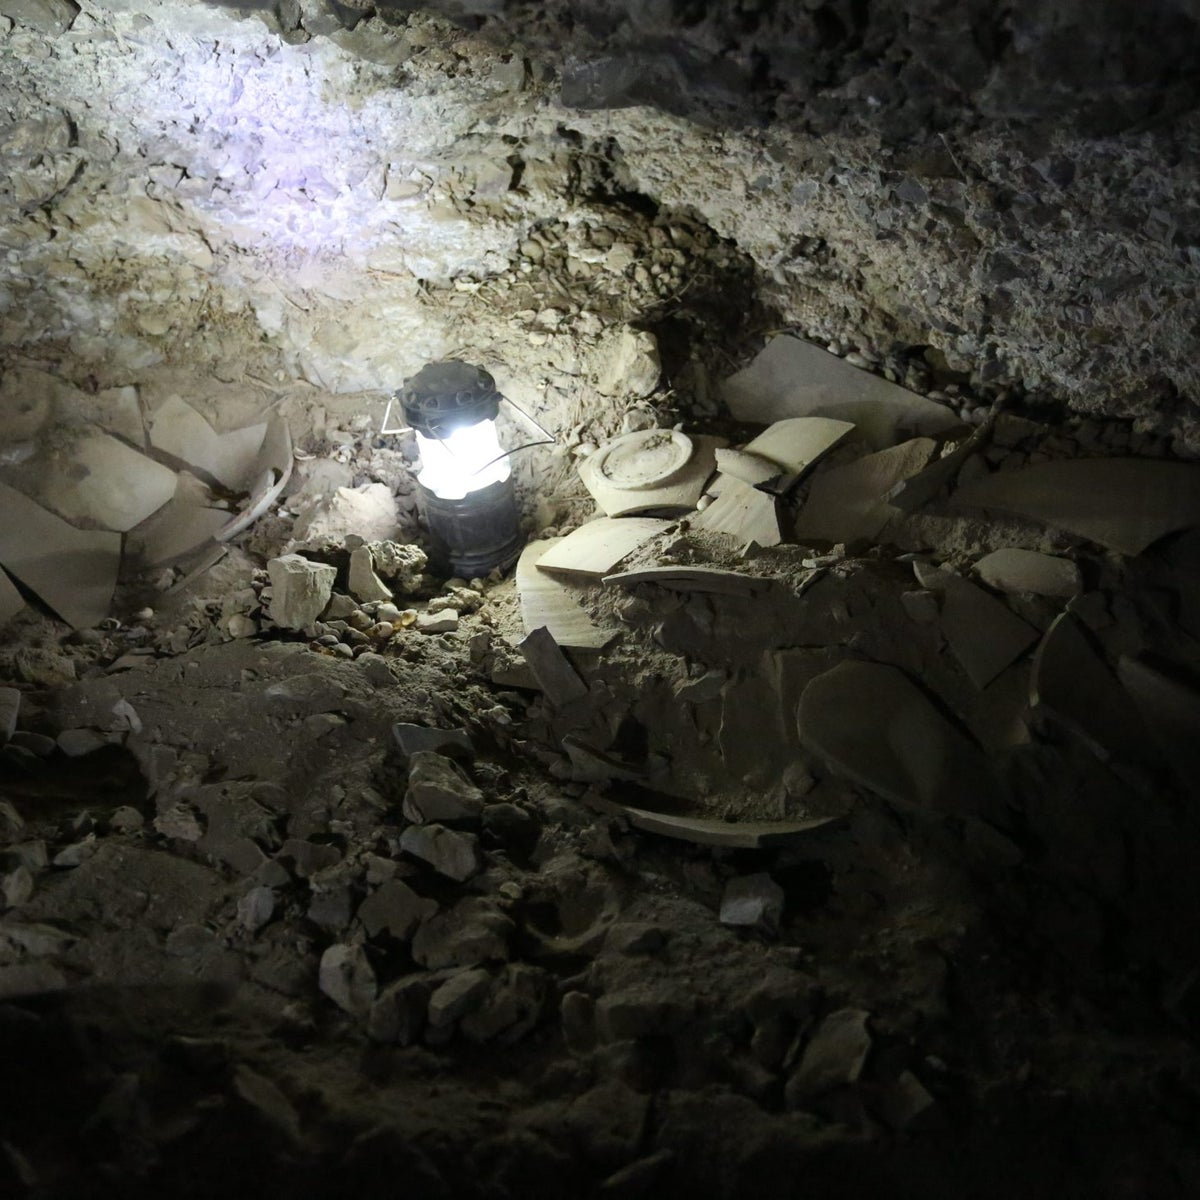 Fragments of jars that contained stolen scrolls, illuminated by a lamp, found deep inside Dead Sea Scrolls Cave 12.